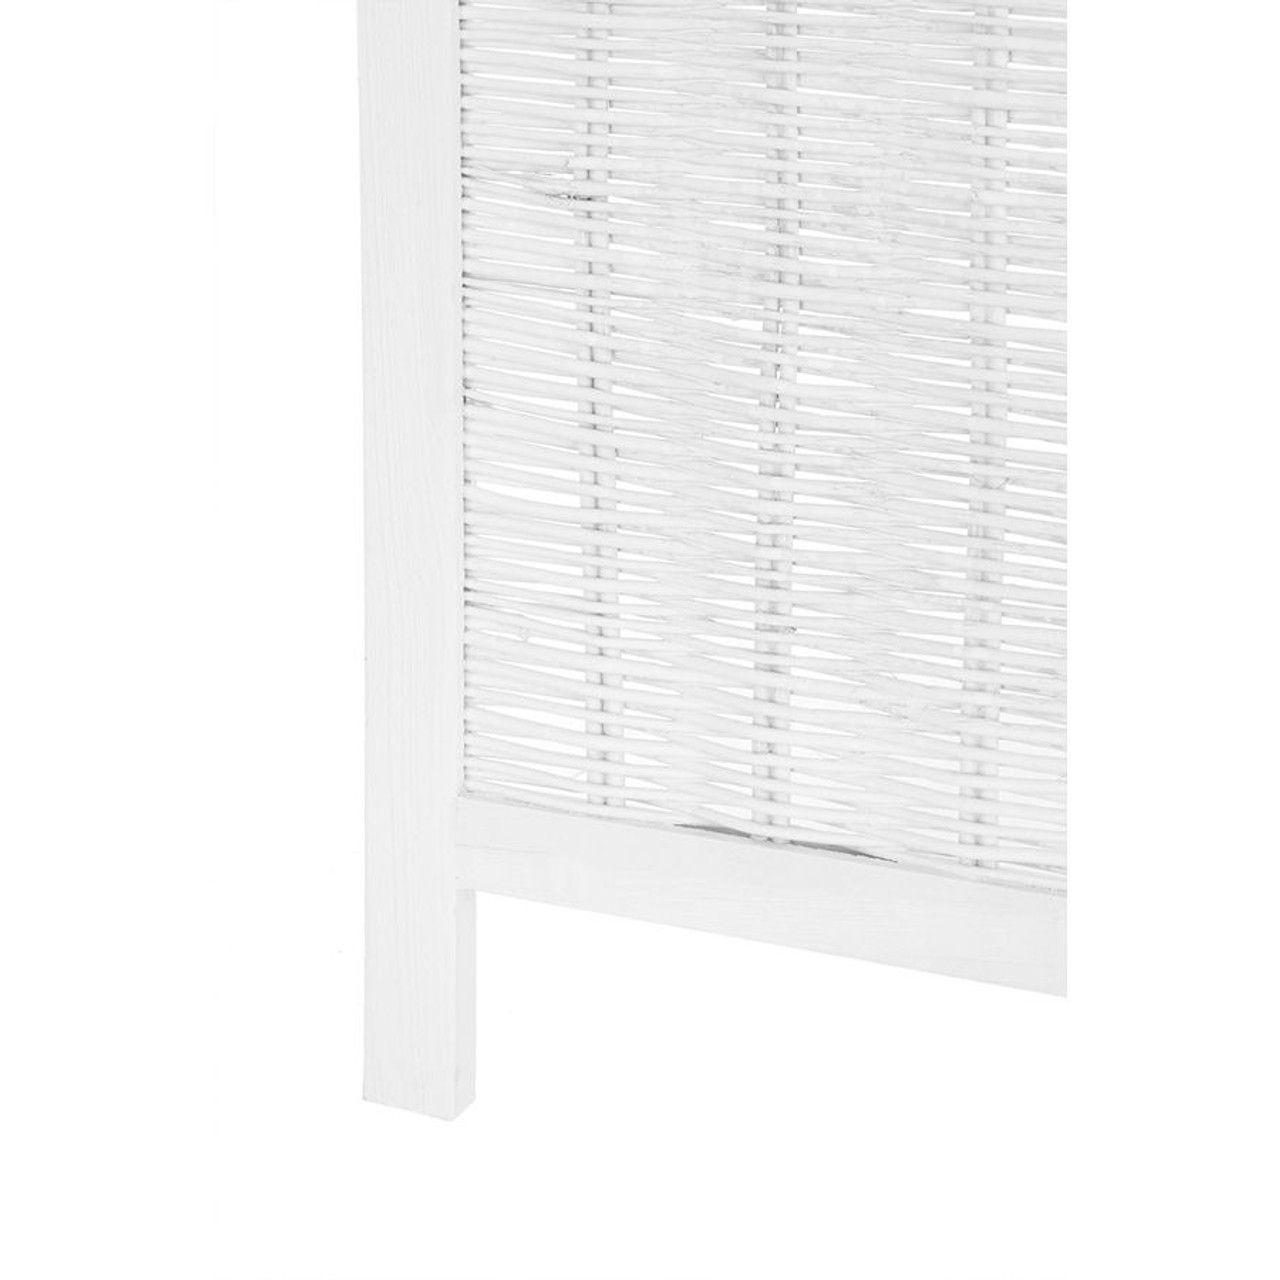 4 Panel Room Divider Wicker White or Brown Color